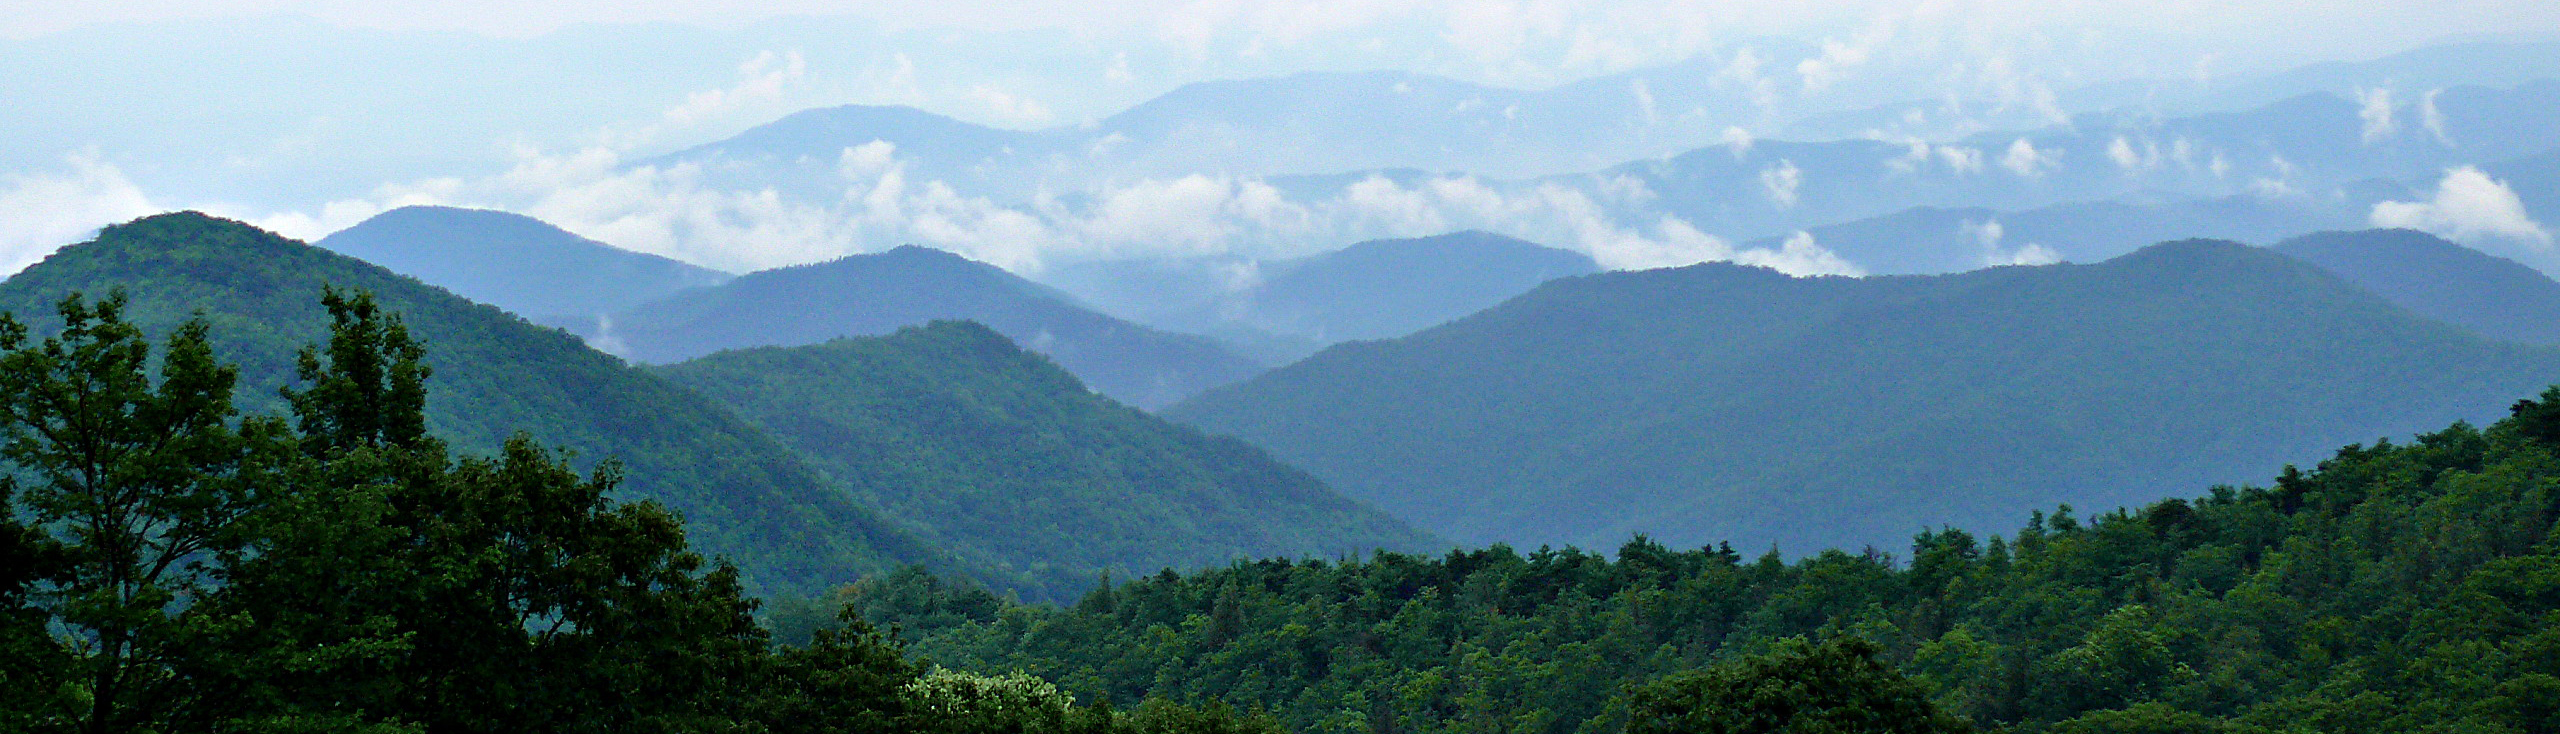 Blue Ridge Mountains @ SUUSI